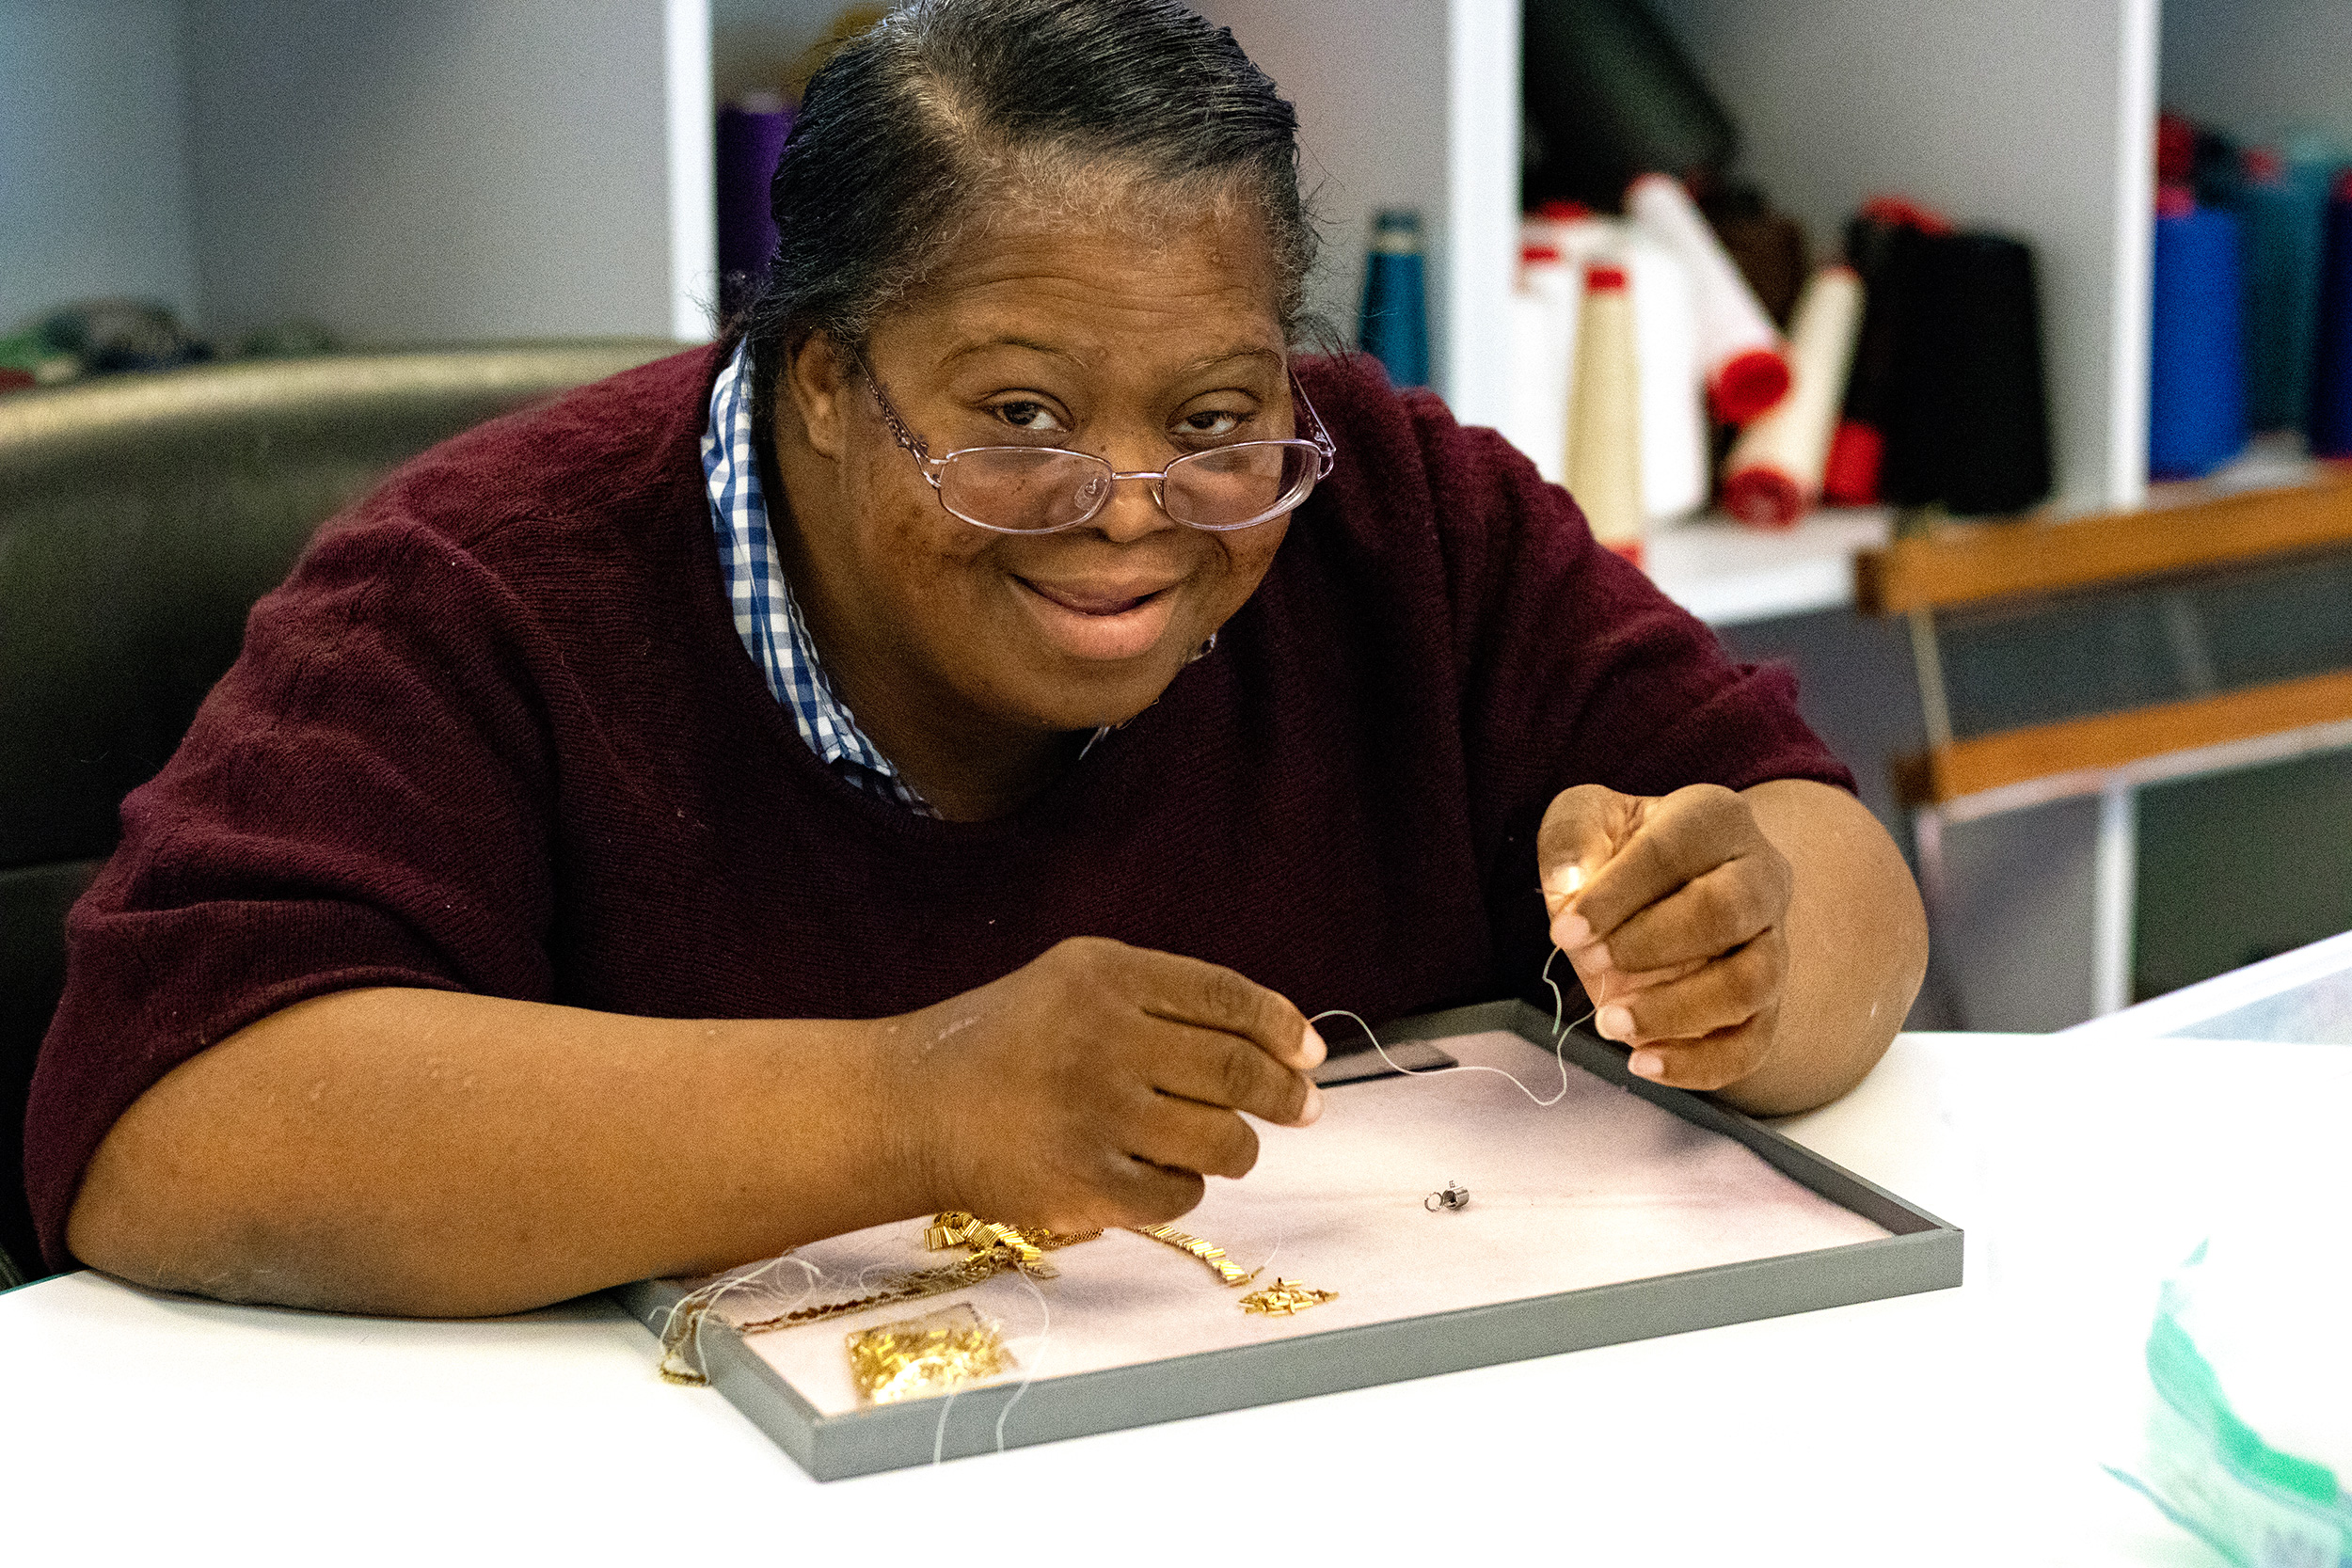 Adult program participant working on jewelry piece